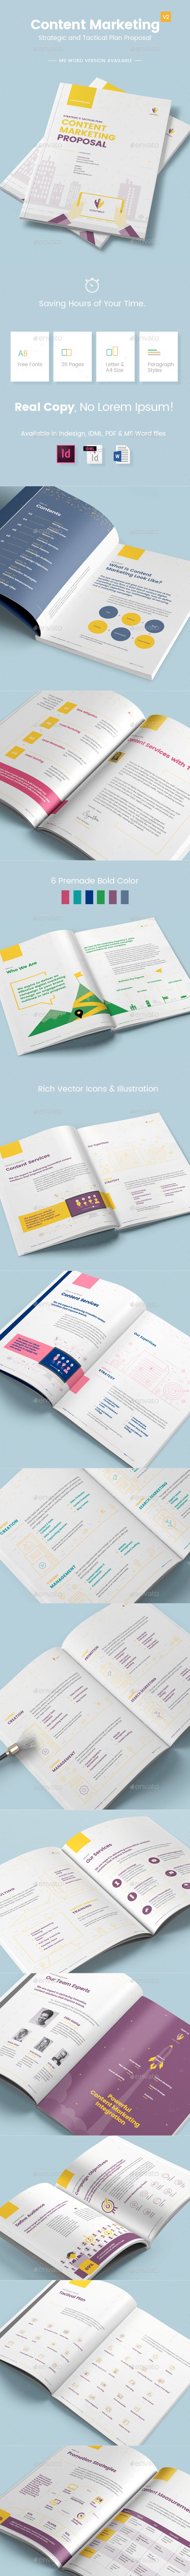 Content Marketing Proposal V2 - Proposals & Invoices Stationery